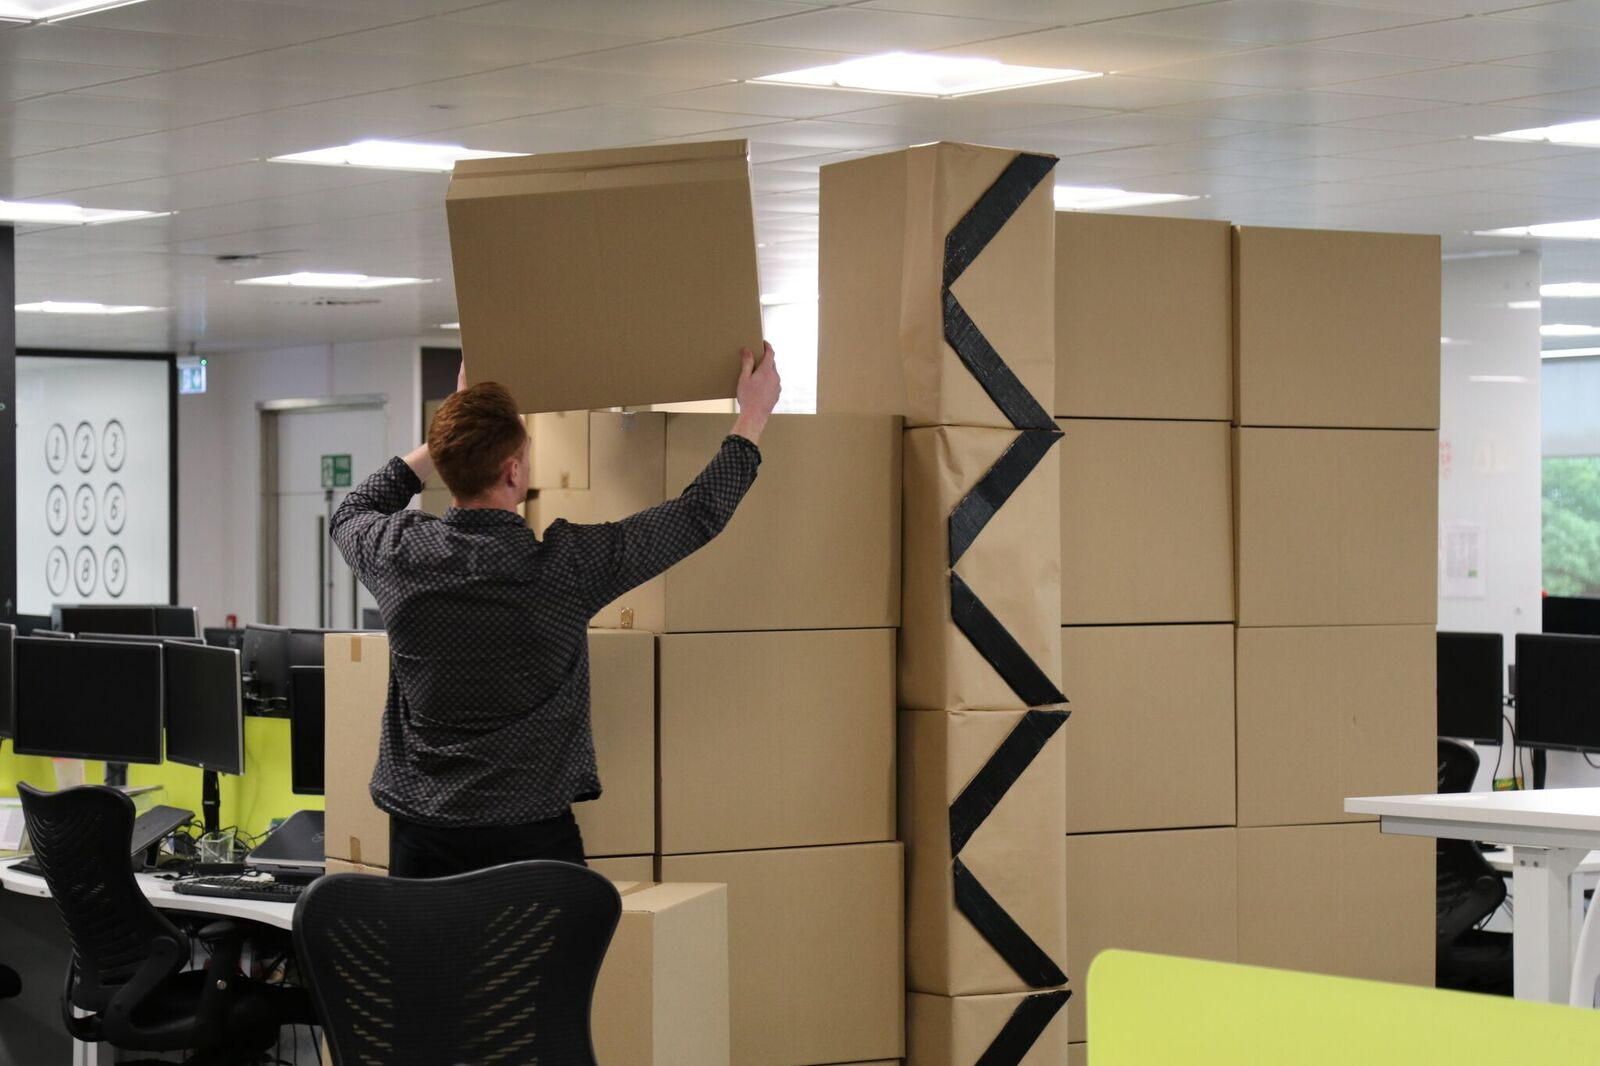 The boxes are put together to create the wall.